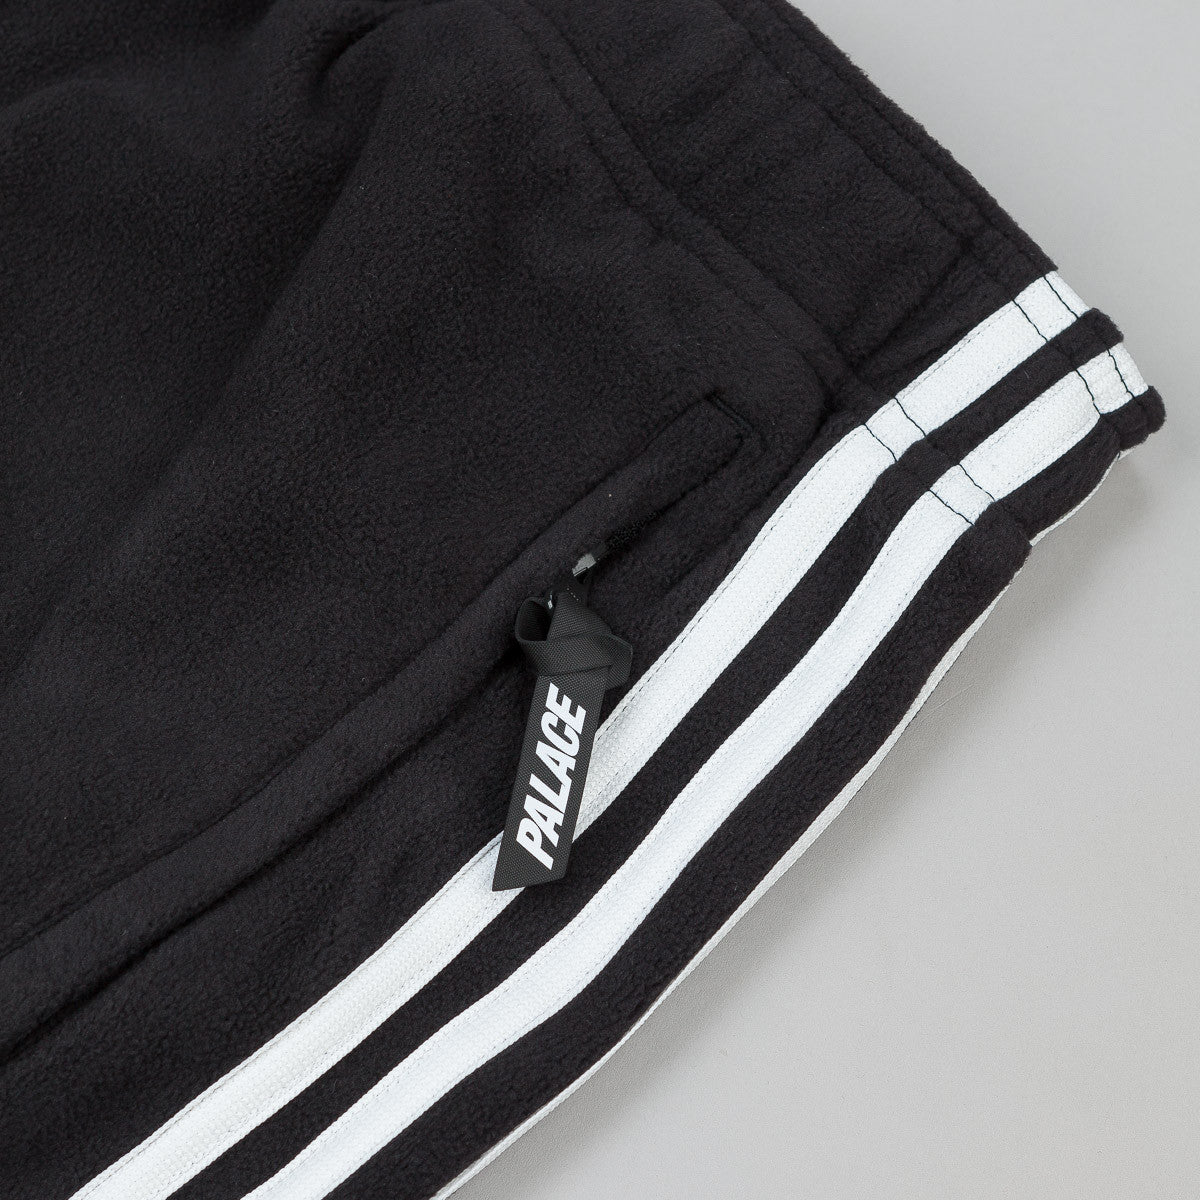 Adidas x Palace Fleece Sweatpants - Black / White